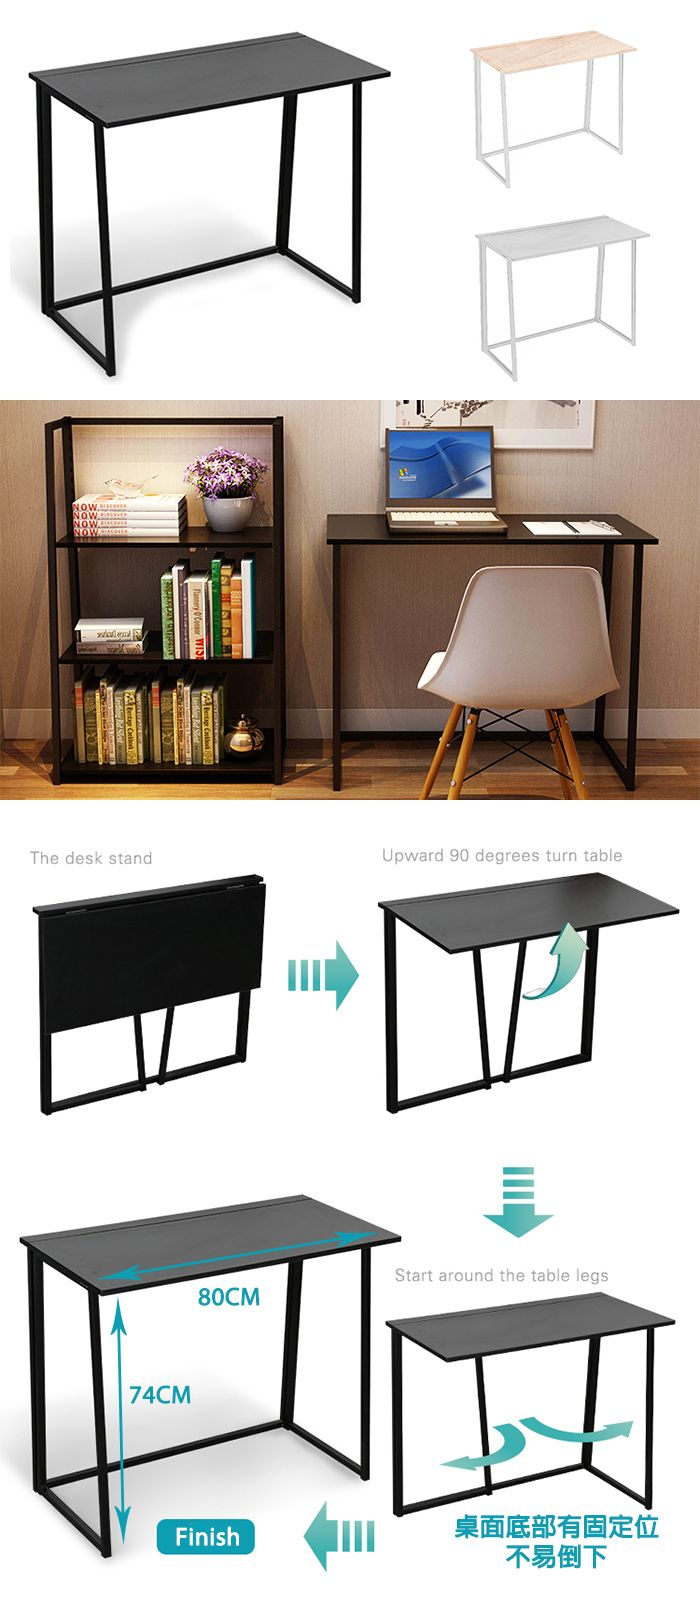 W02 Easy Diy Foldable Desk Wood Suchprice Malaysia Foldable Furniture Foldable Desk Desk